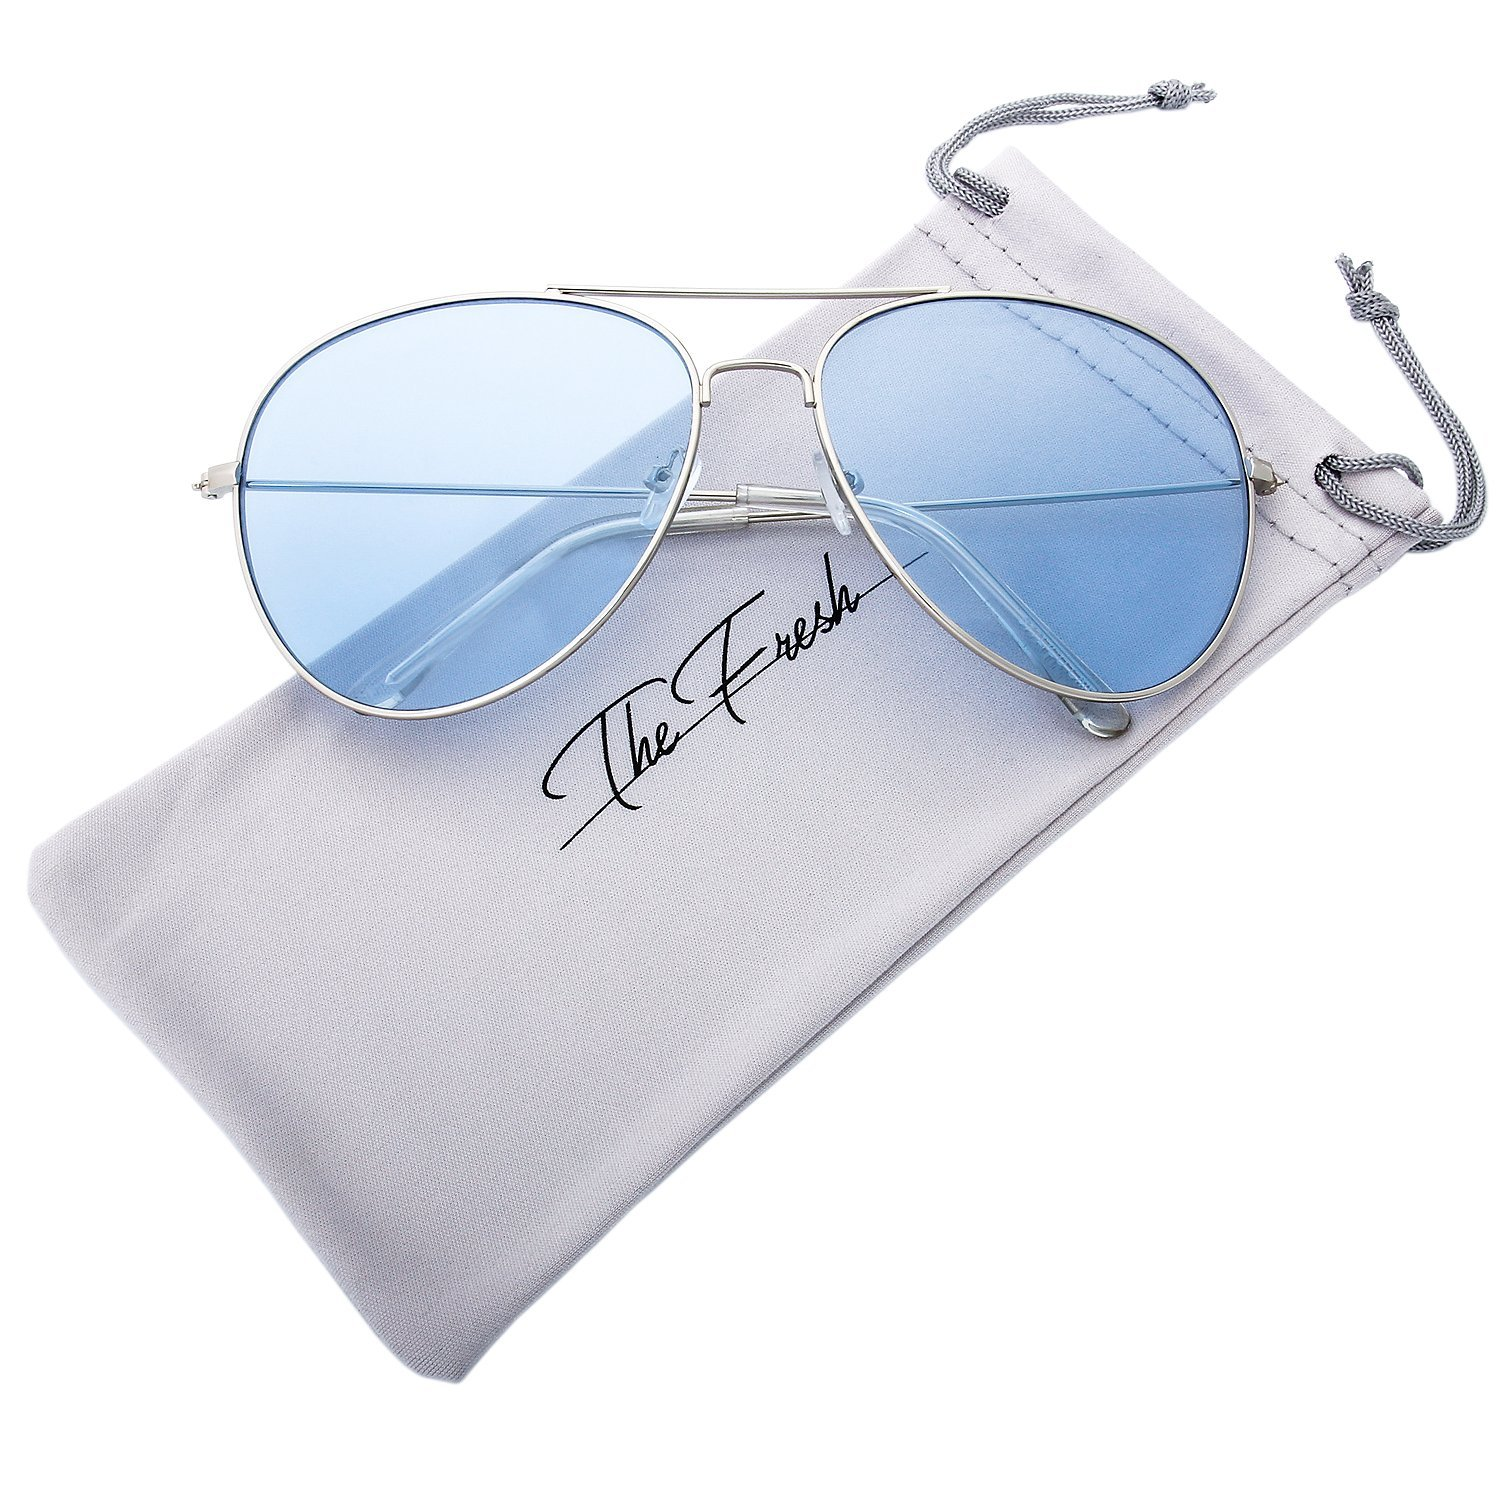 The Fresh Classic Metal Frame Light Color Lens XL Oversized Aviator Sunglasses with Gift Box (1-Silver, Blue)